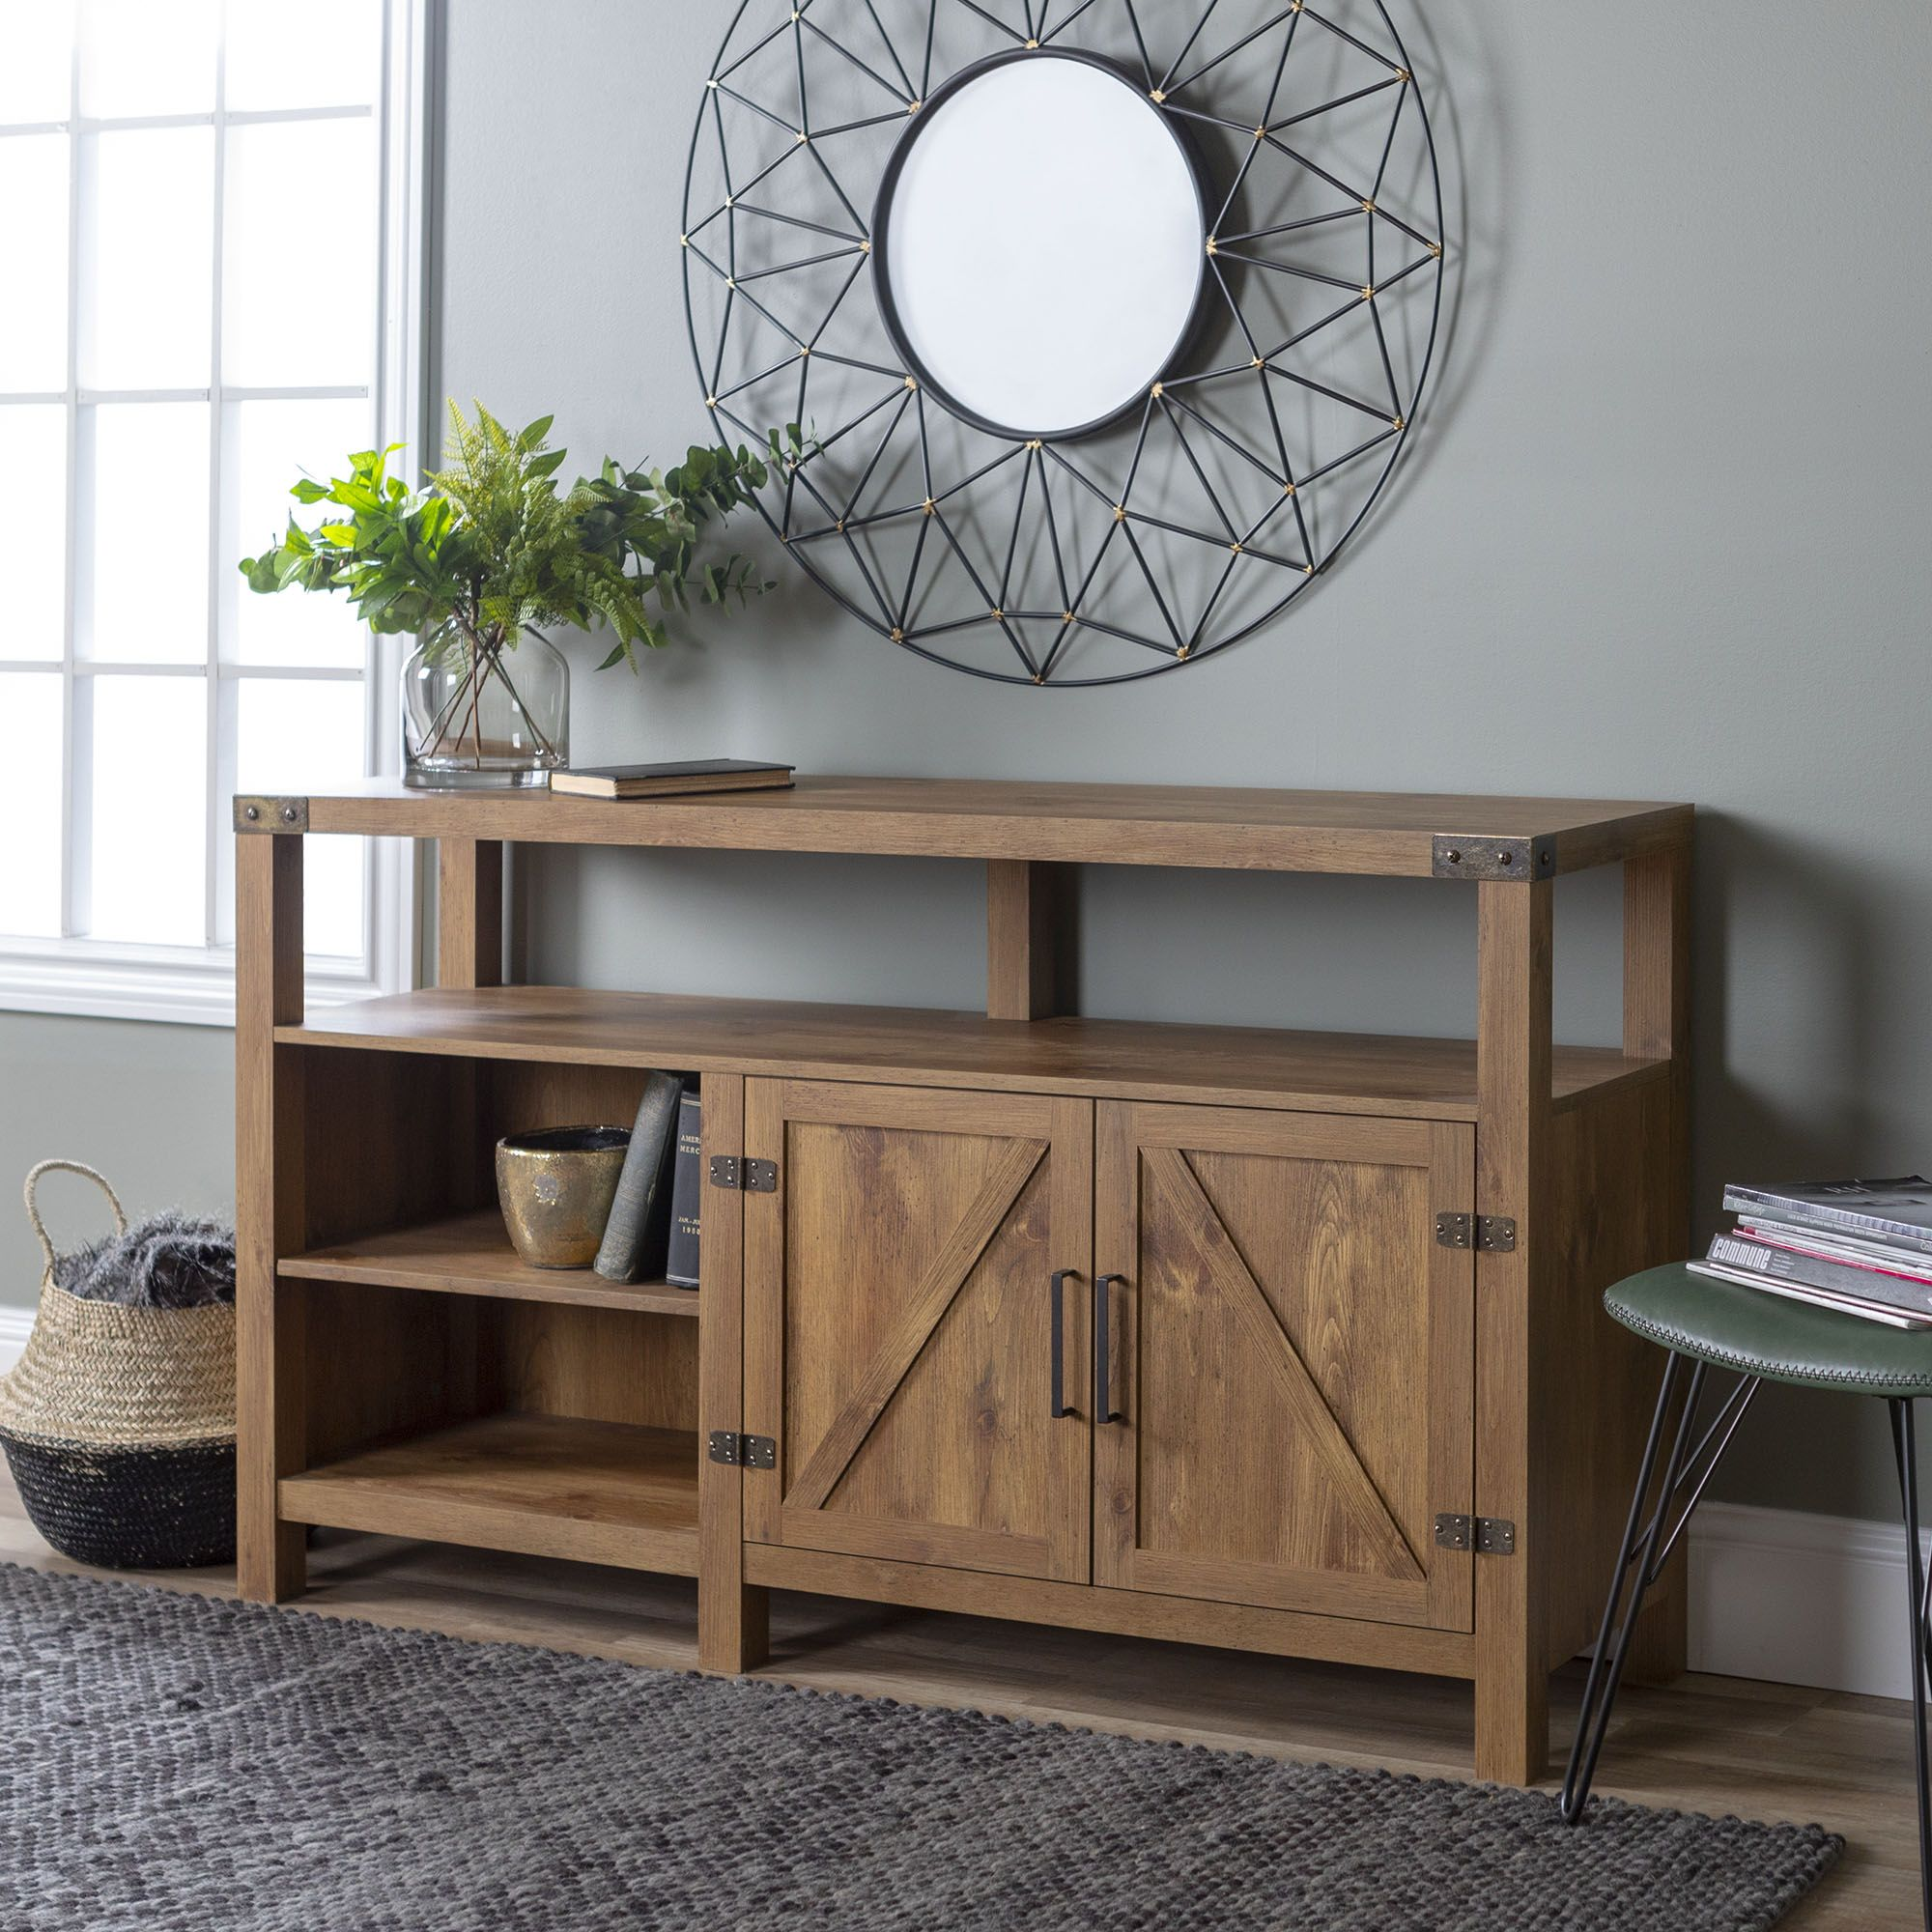 Picture of: W Trends 58 Farmhouse Extra Tall Tv Stand For Most Tv S Up To 65 Barnwood Bjs Wholesale Club